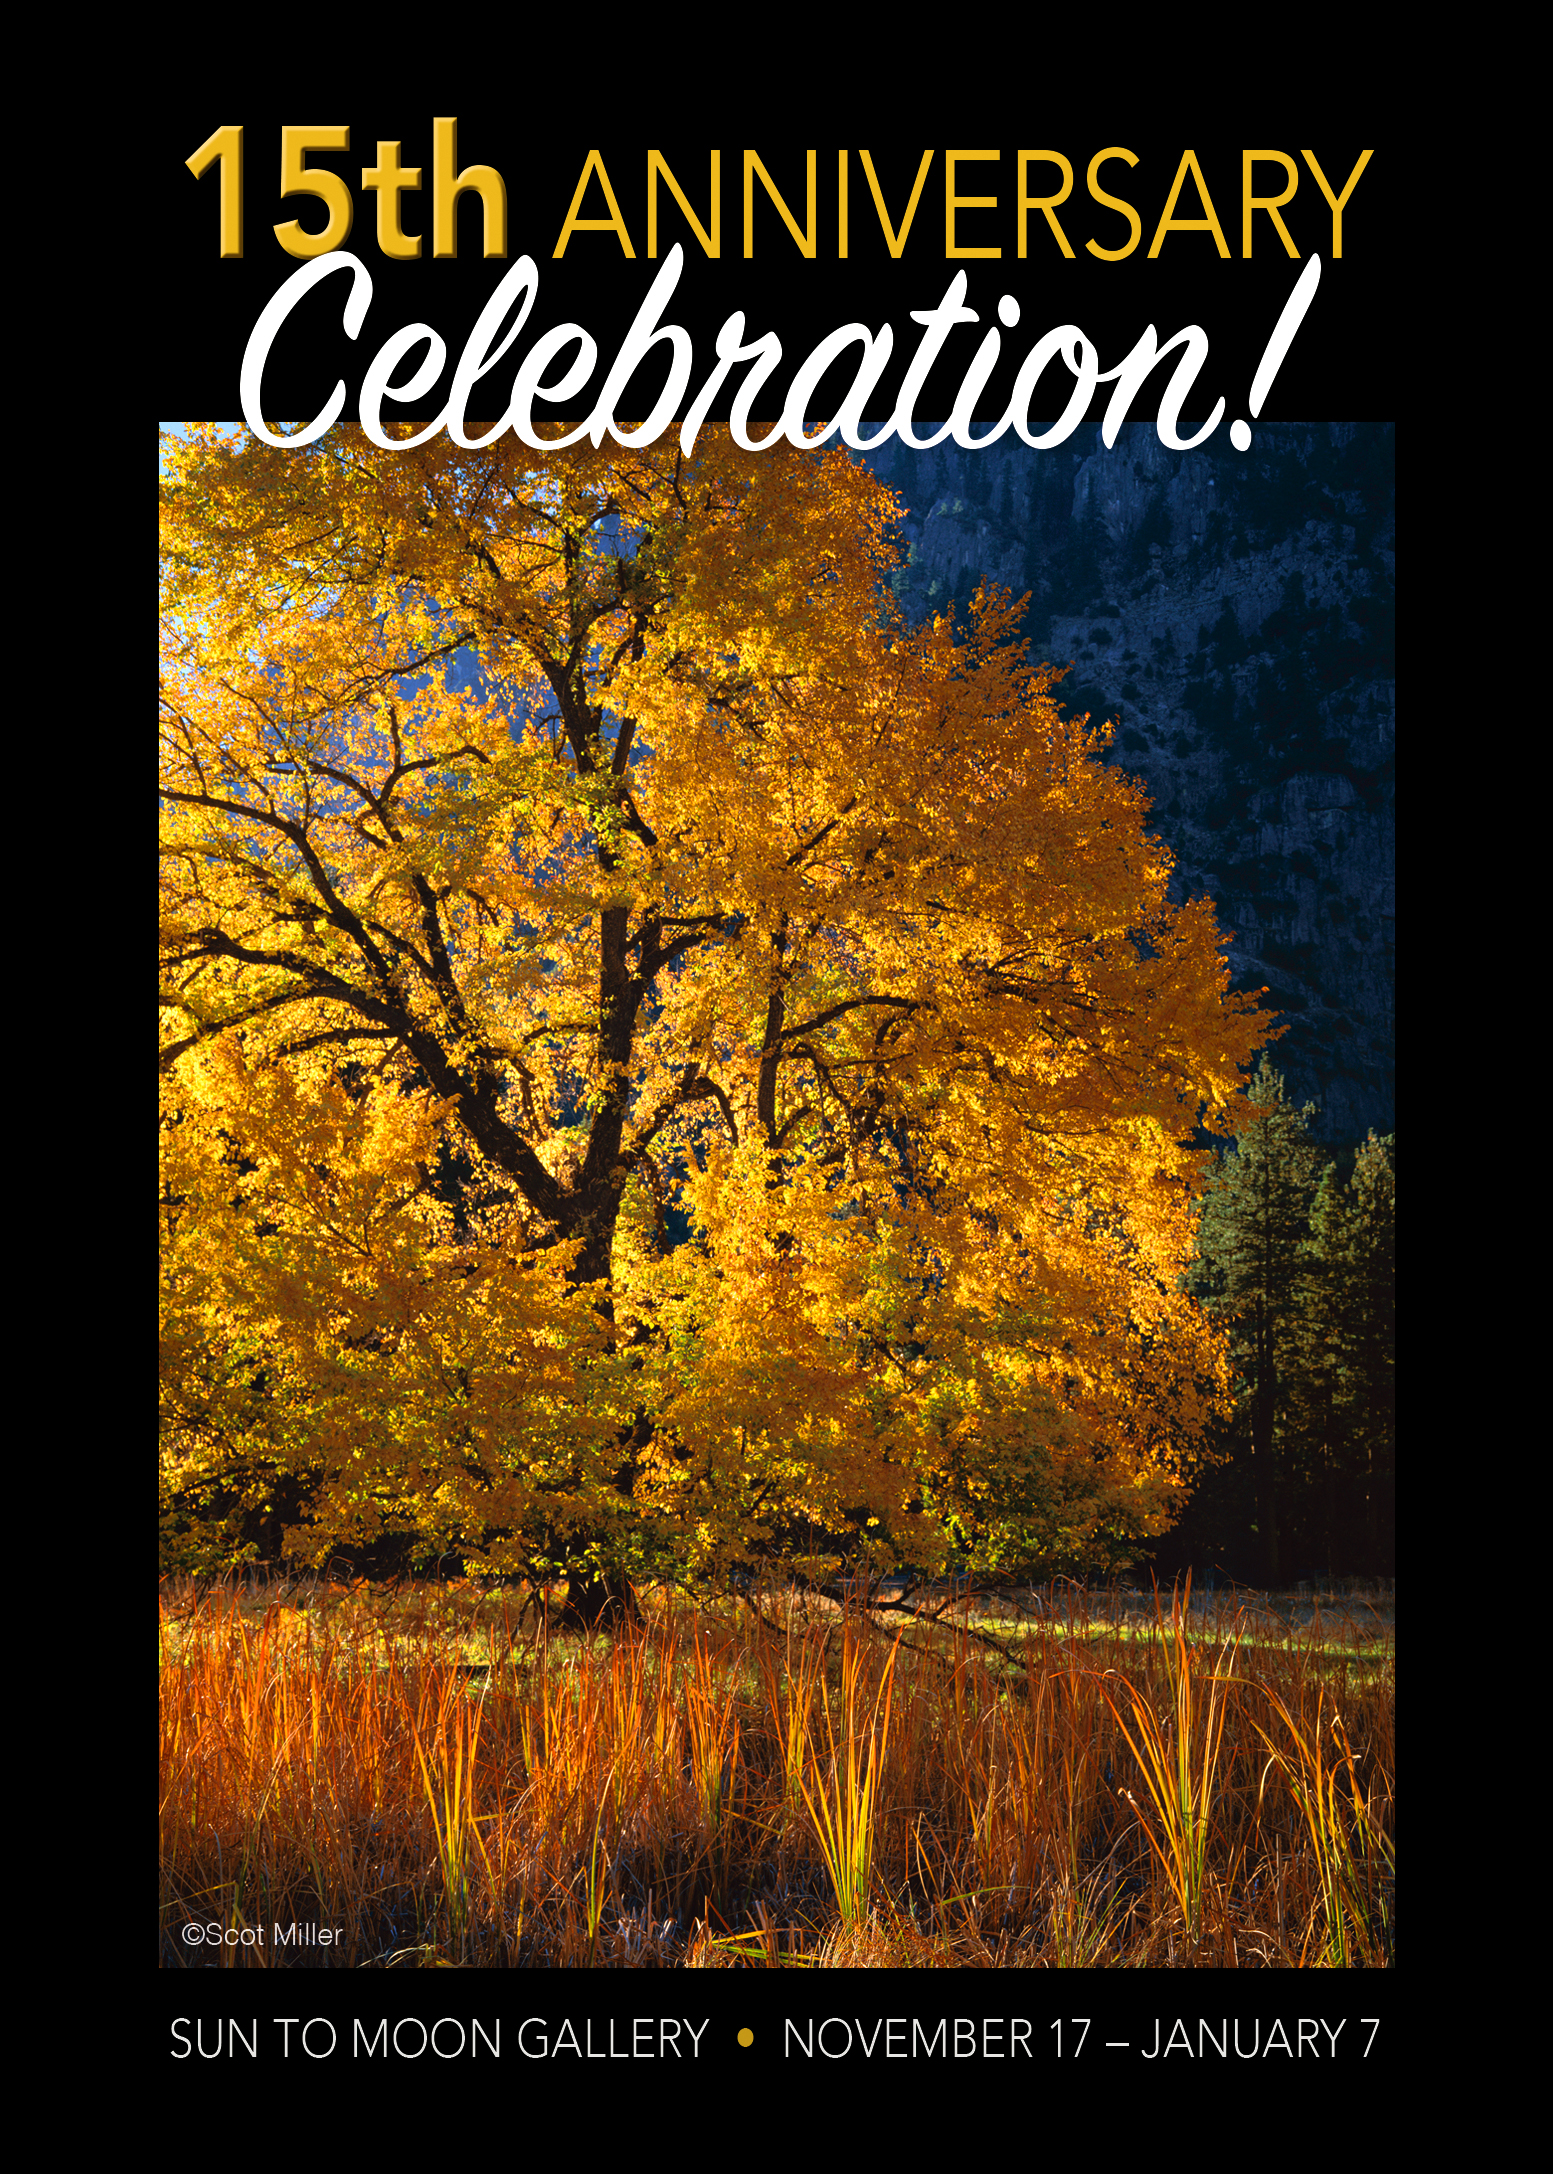 15th ANNIVERSARY RECEPTION & HOLIDAY OPEN HOUSE - Saturday, November 19, 5:00 – 8:00 p.m.